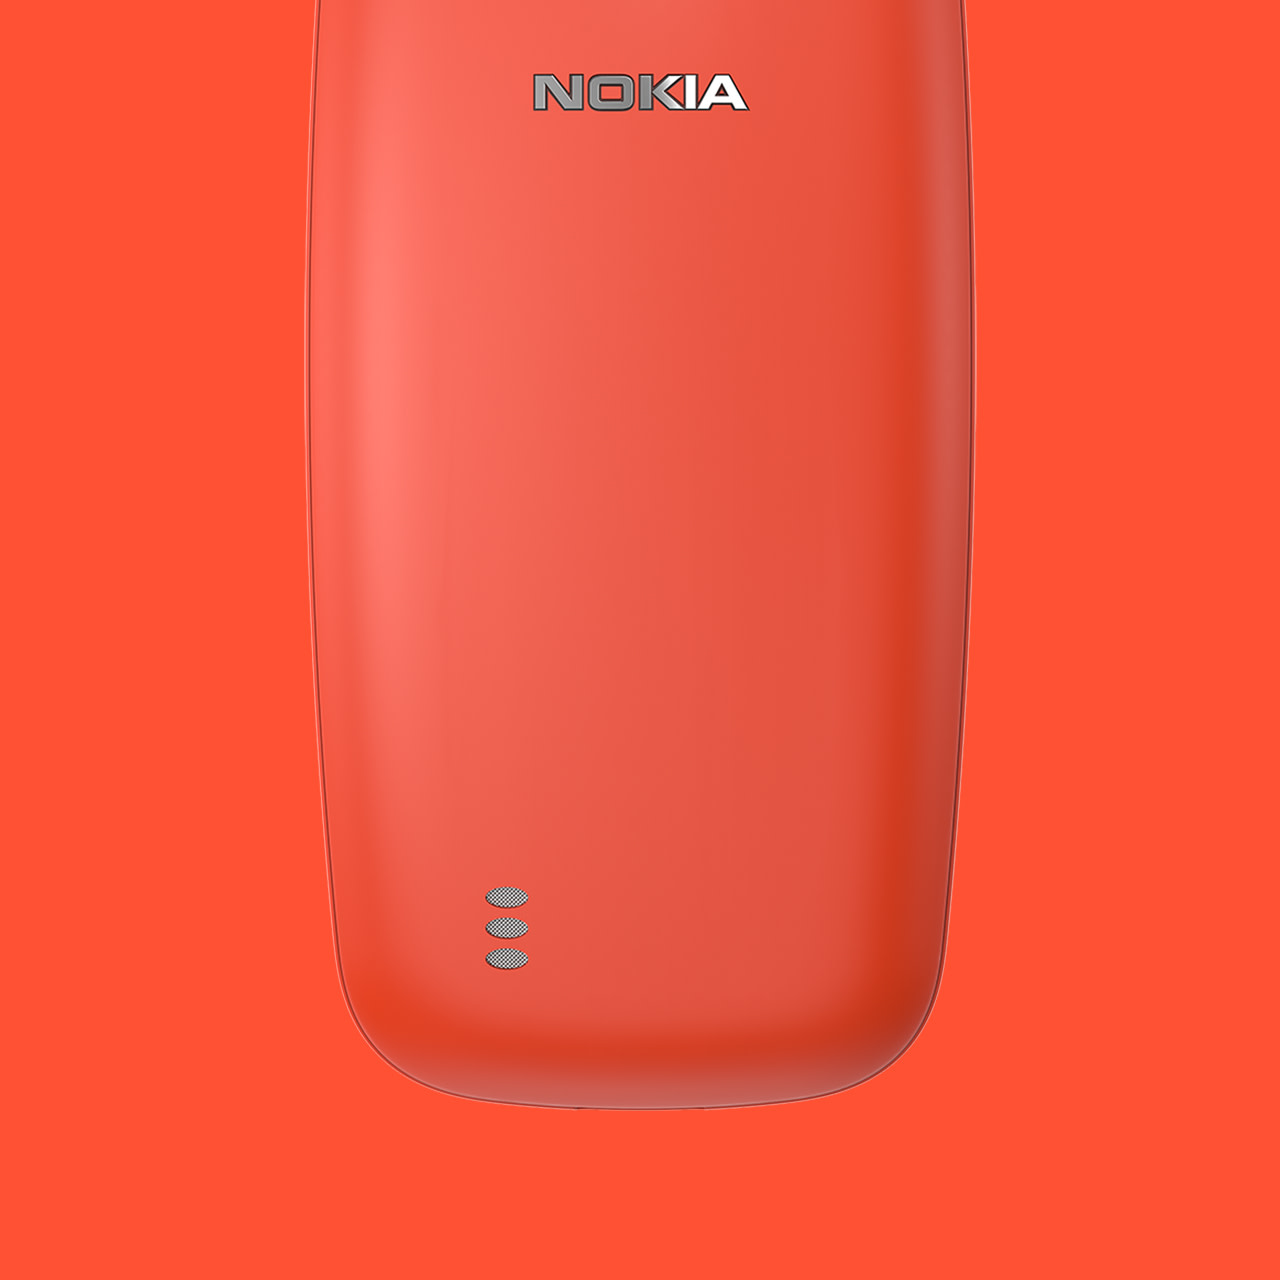 nokia_3310_3G-design_block-warmred.jpg